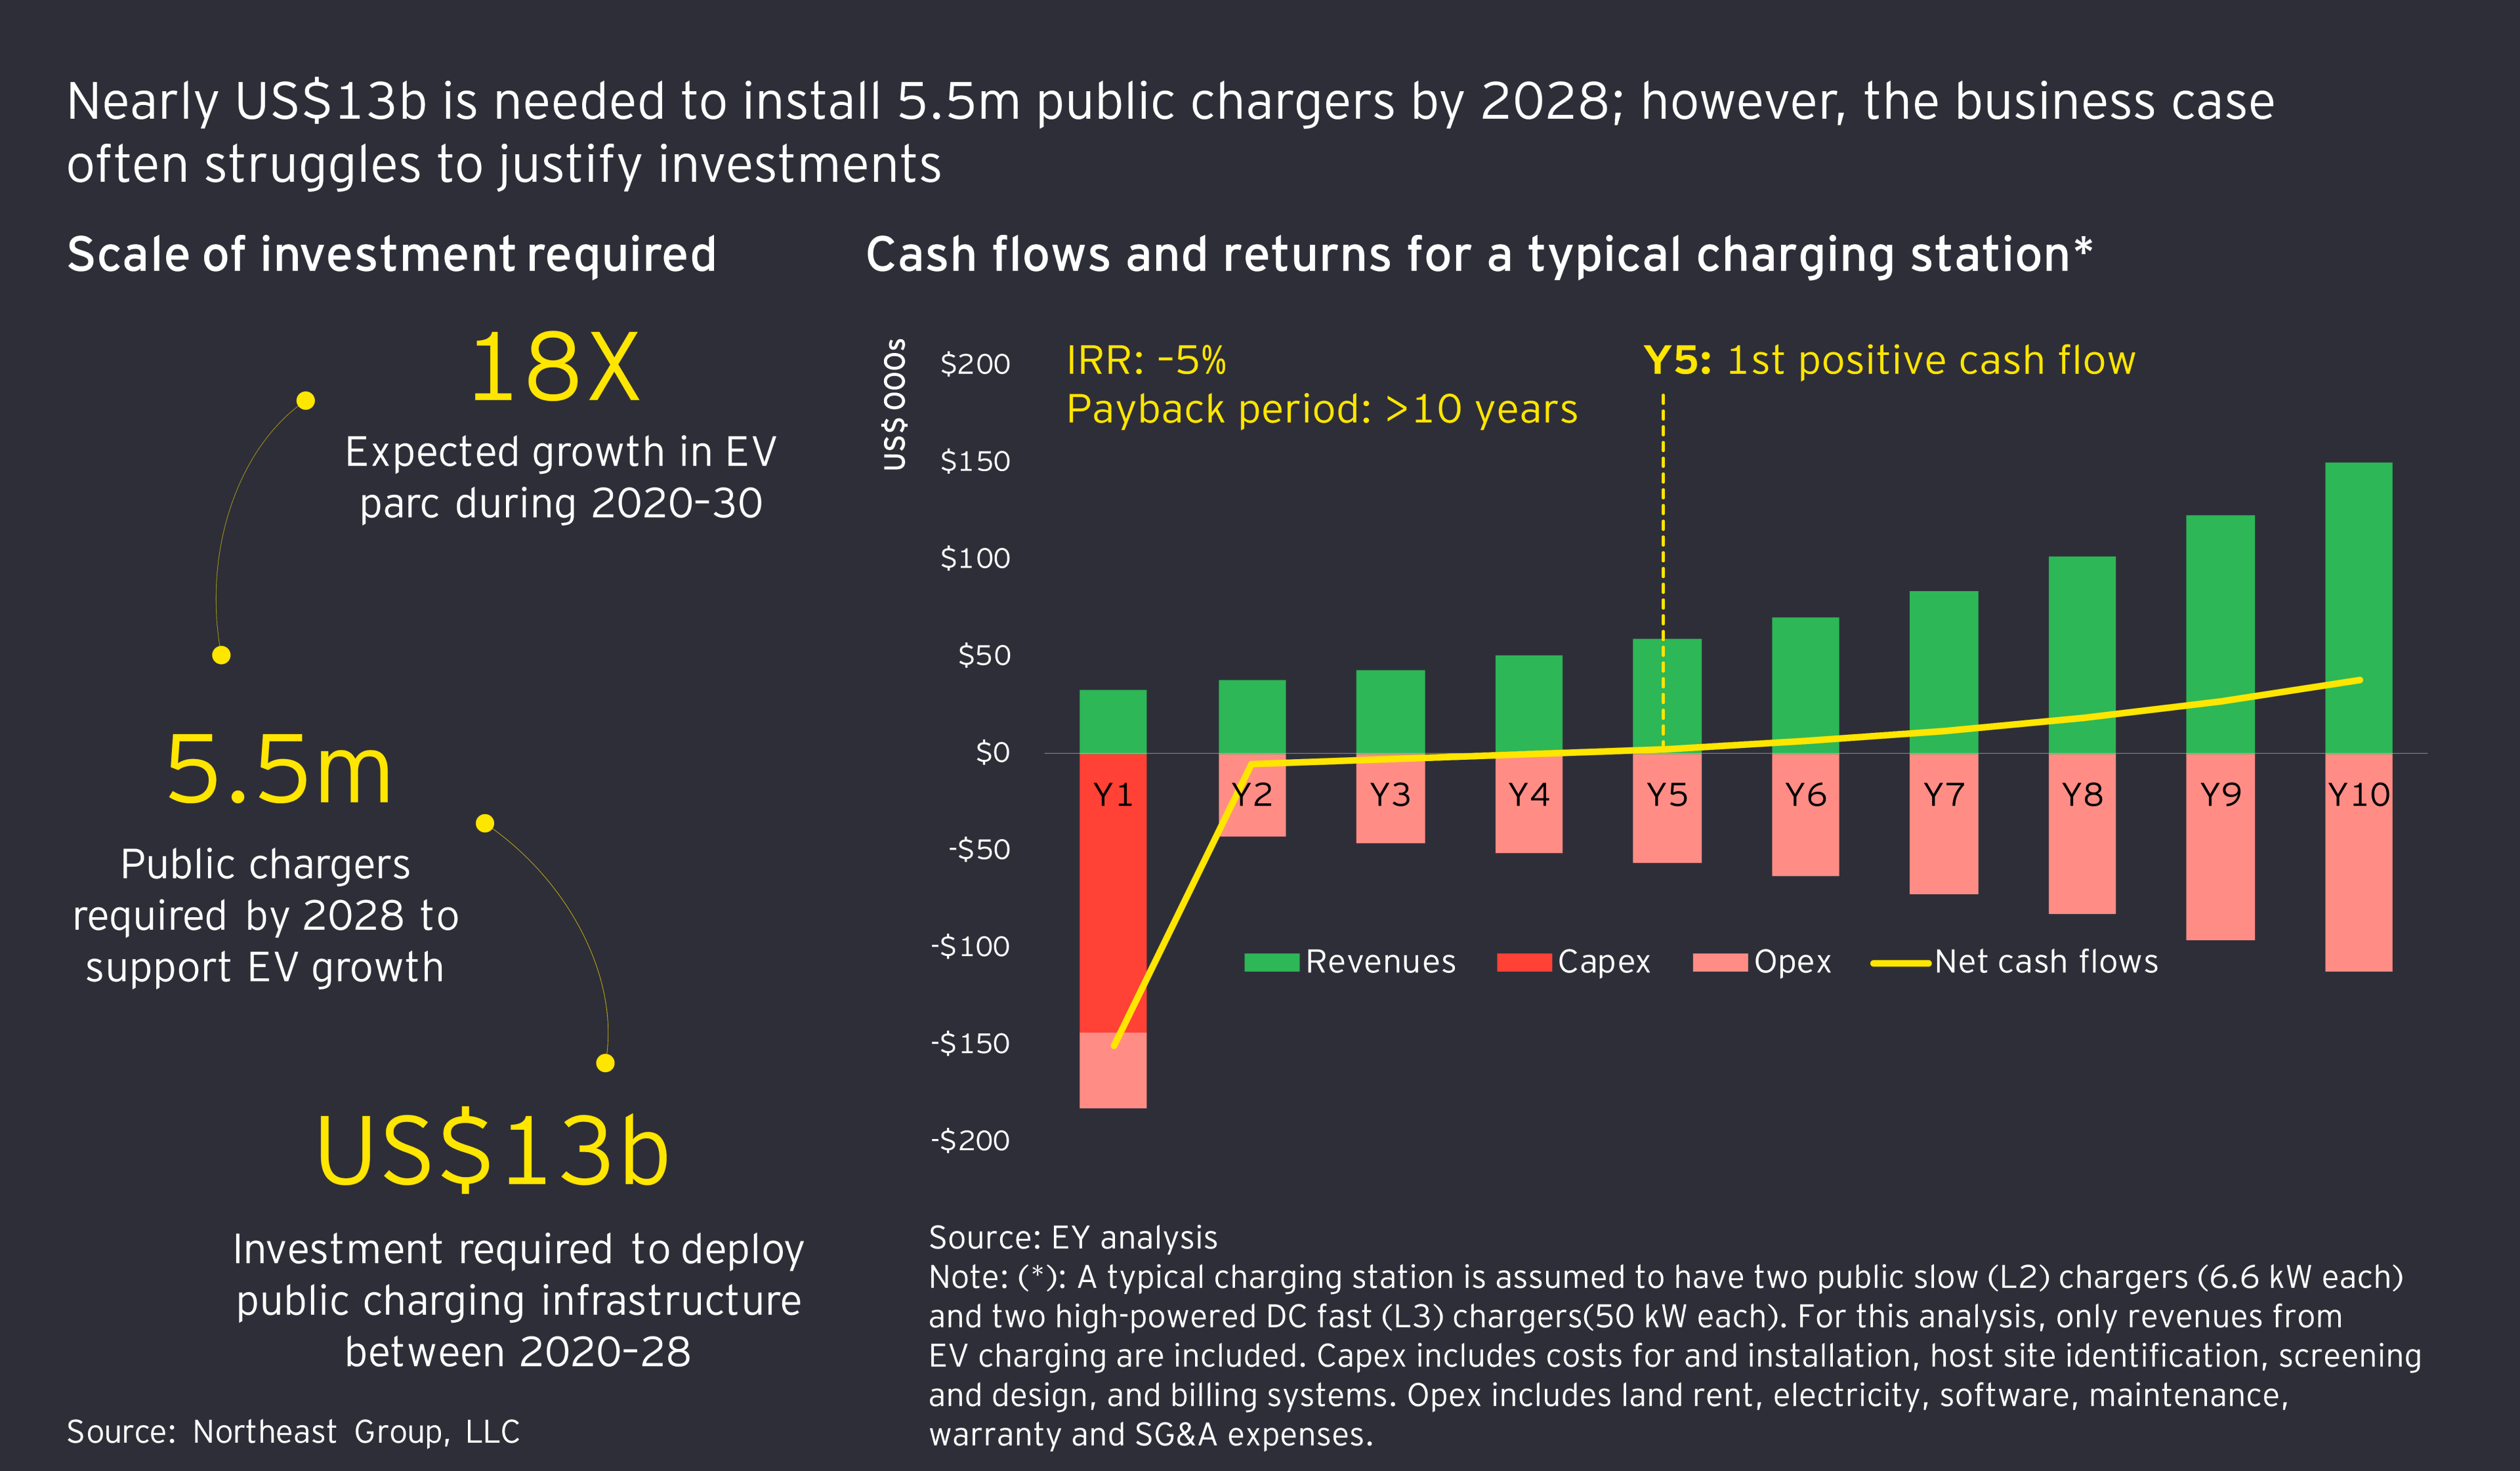 Yearly cash flow for a charging station